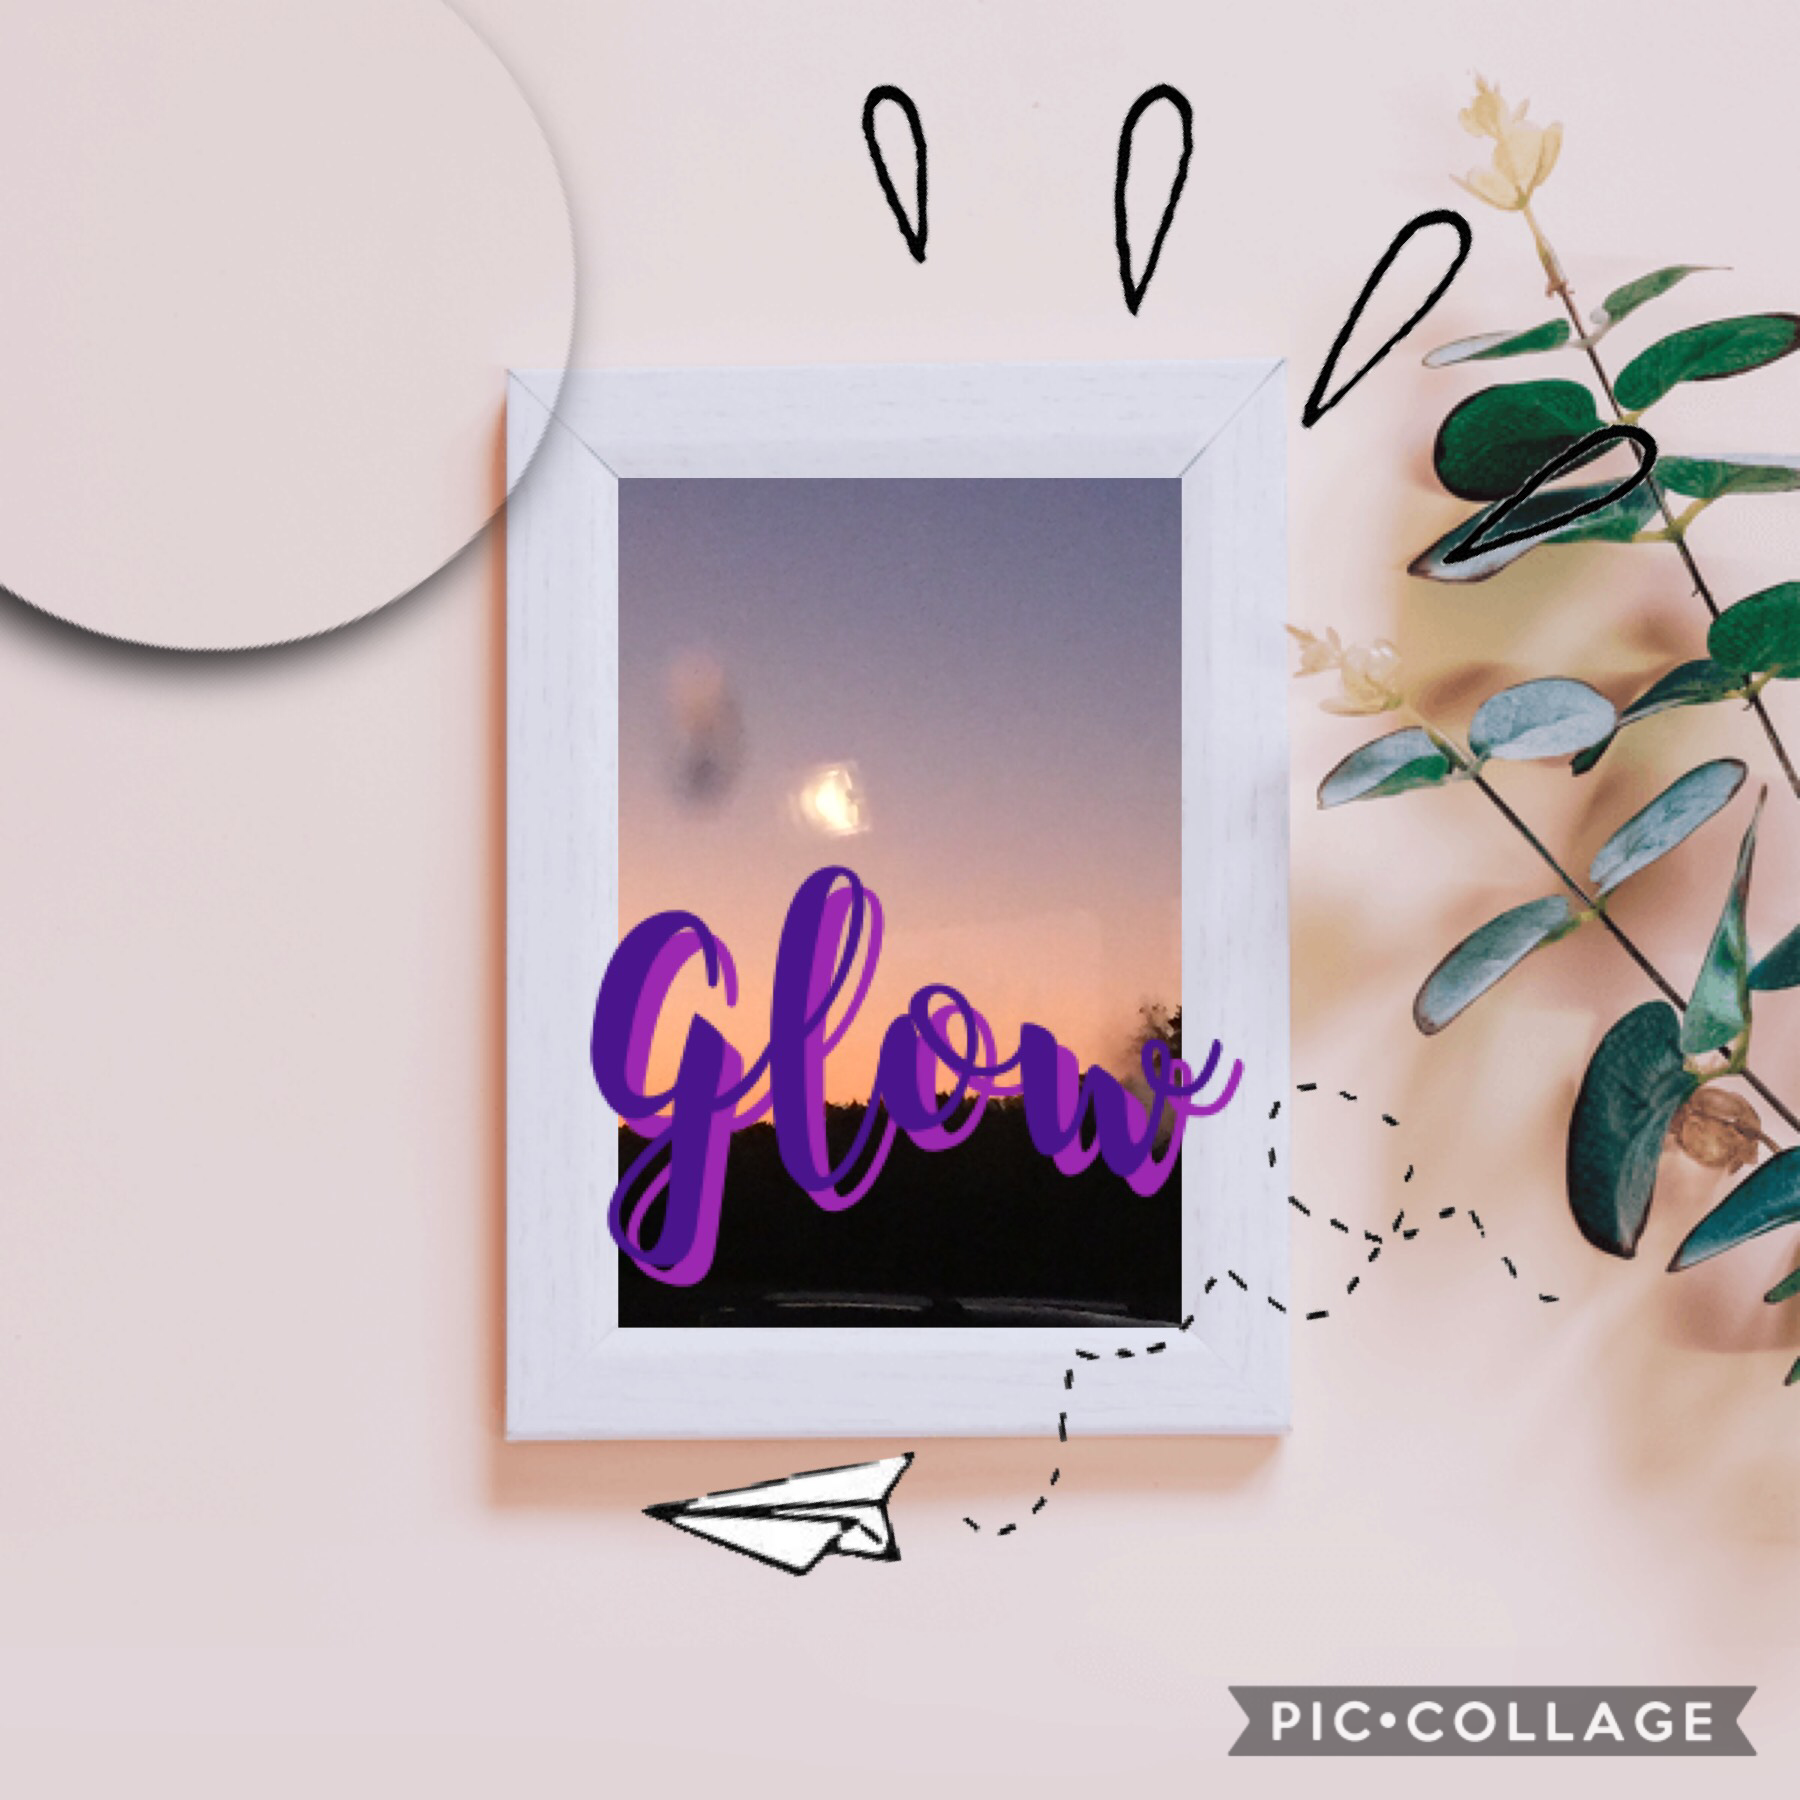 Took the sunrise background      YOU TAPPED  Tap again for magic Tap Tap  Tappp